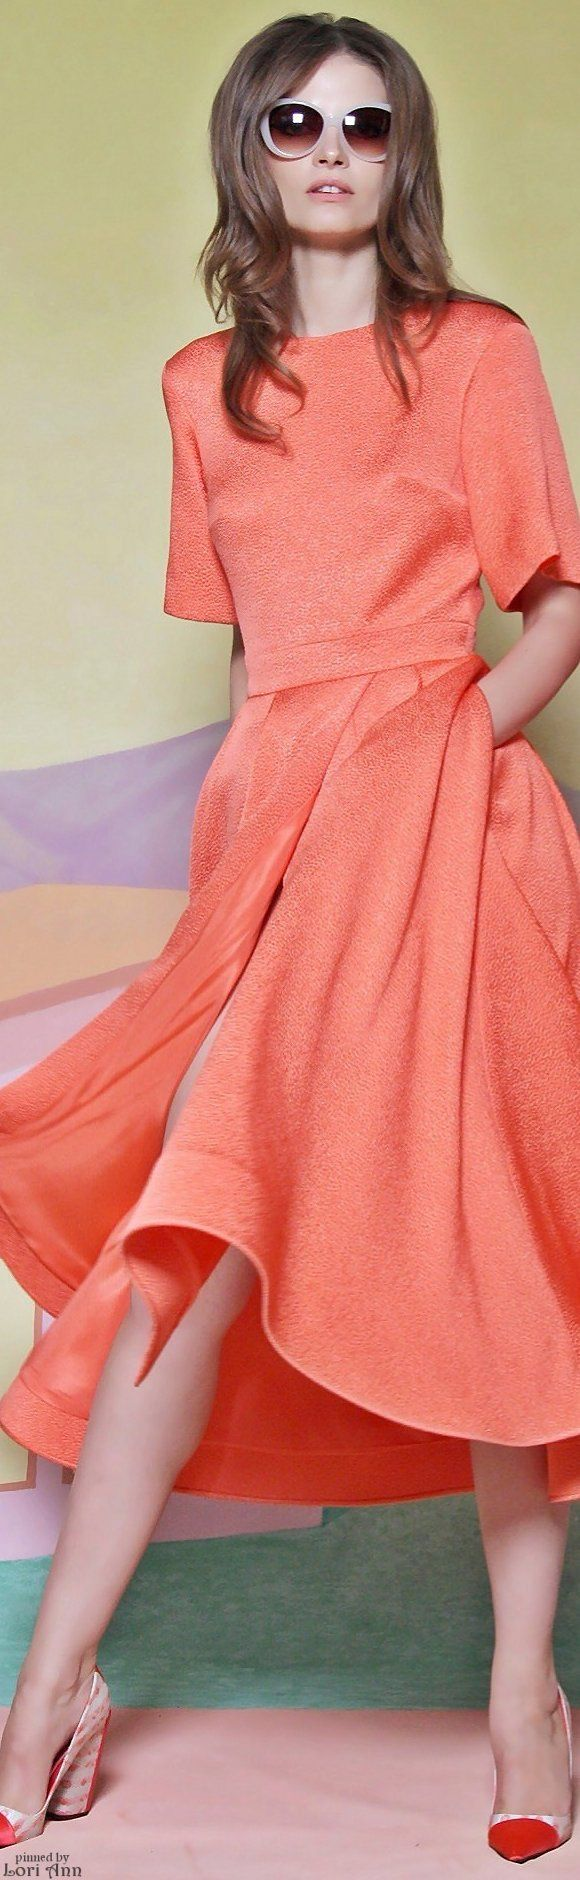 Christian Siriano Resort 2016 women fashion outfit clothing style apparel @roressclothes closet ideas